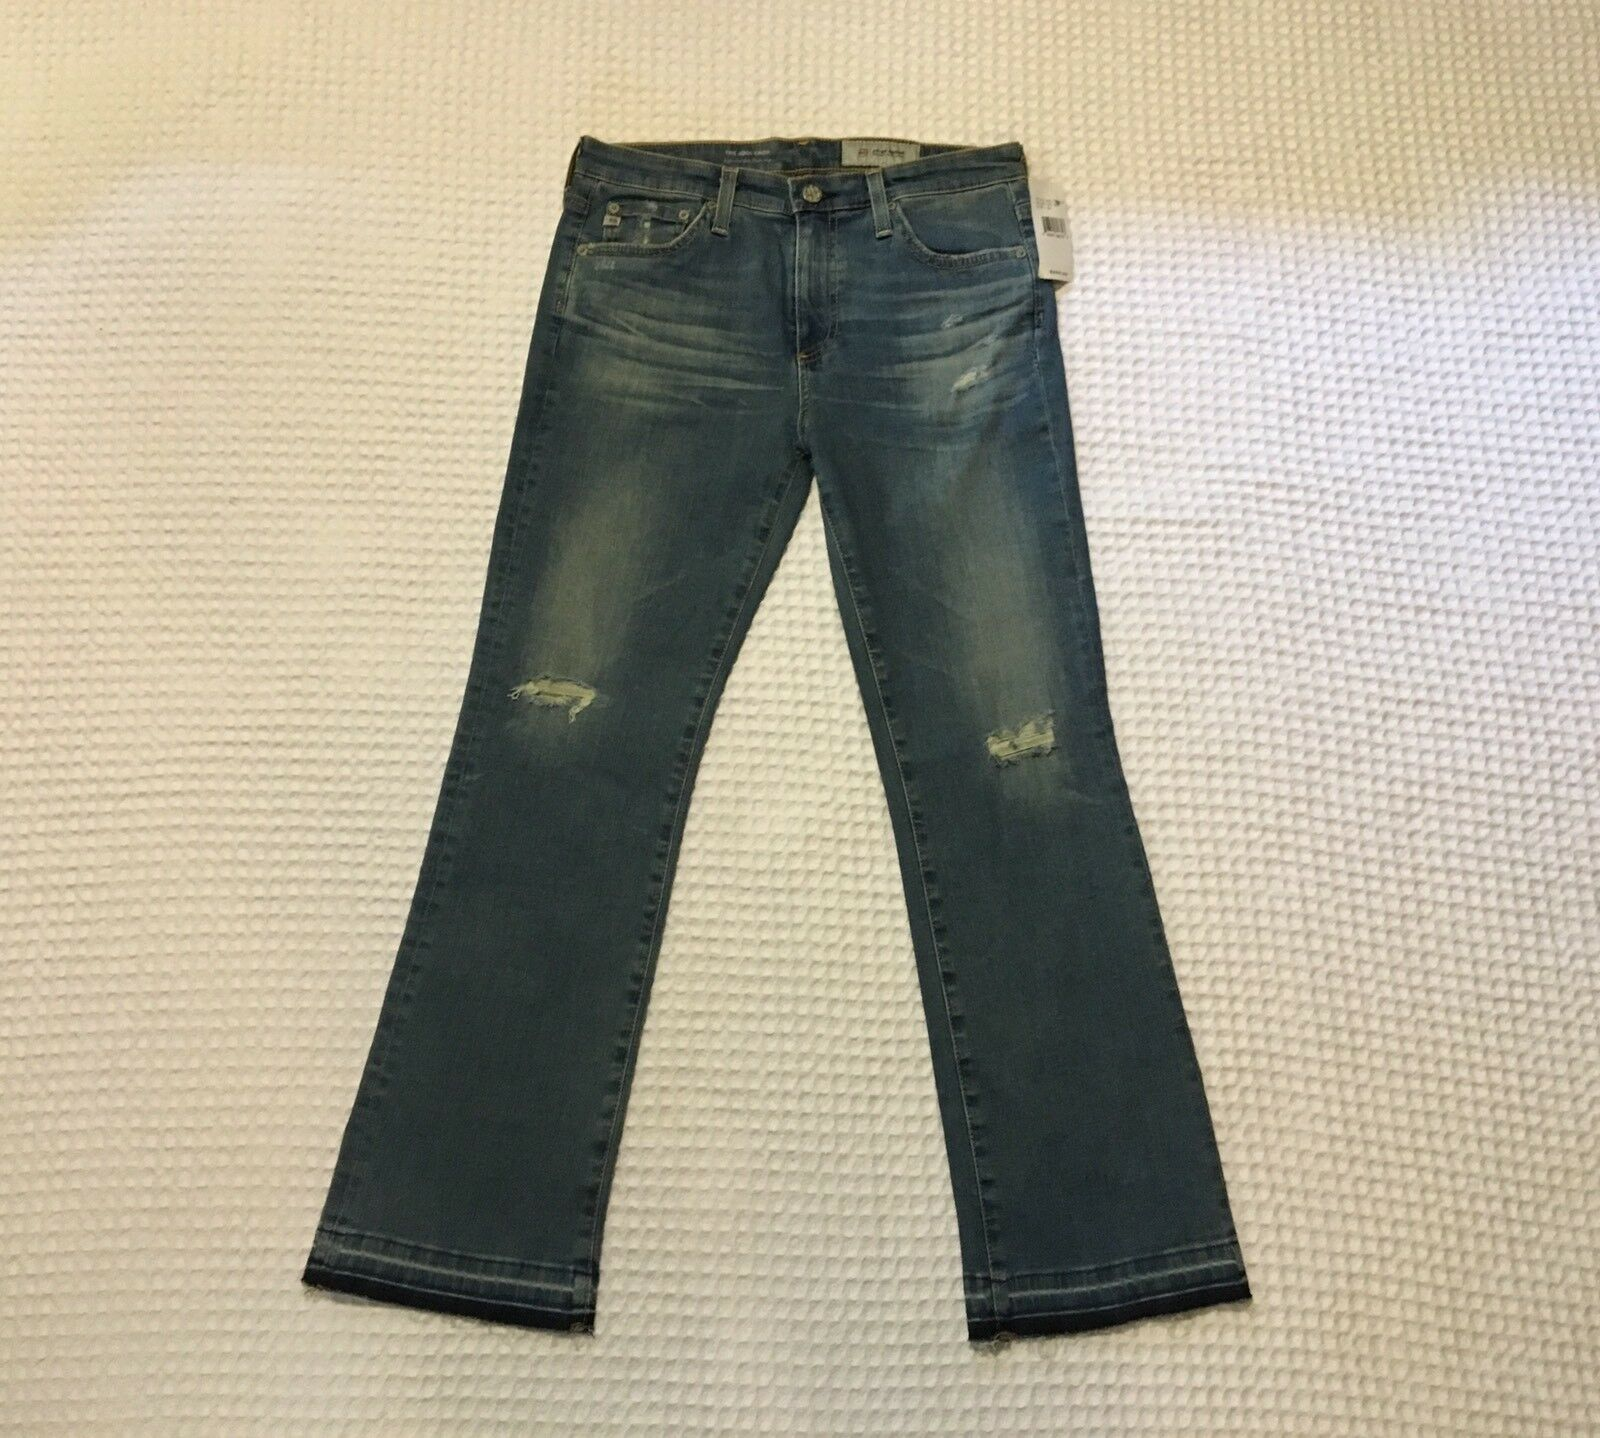 AG Adriano goldschmied AG-ED Jodi Crop 18 Yr High Rise Slim Flare Crop Jeans 28